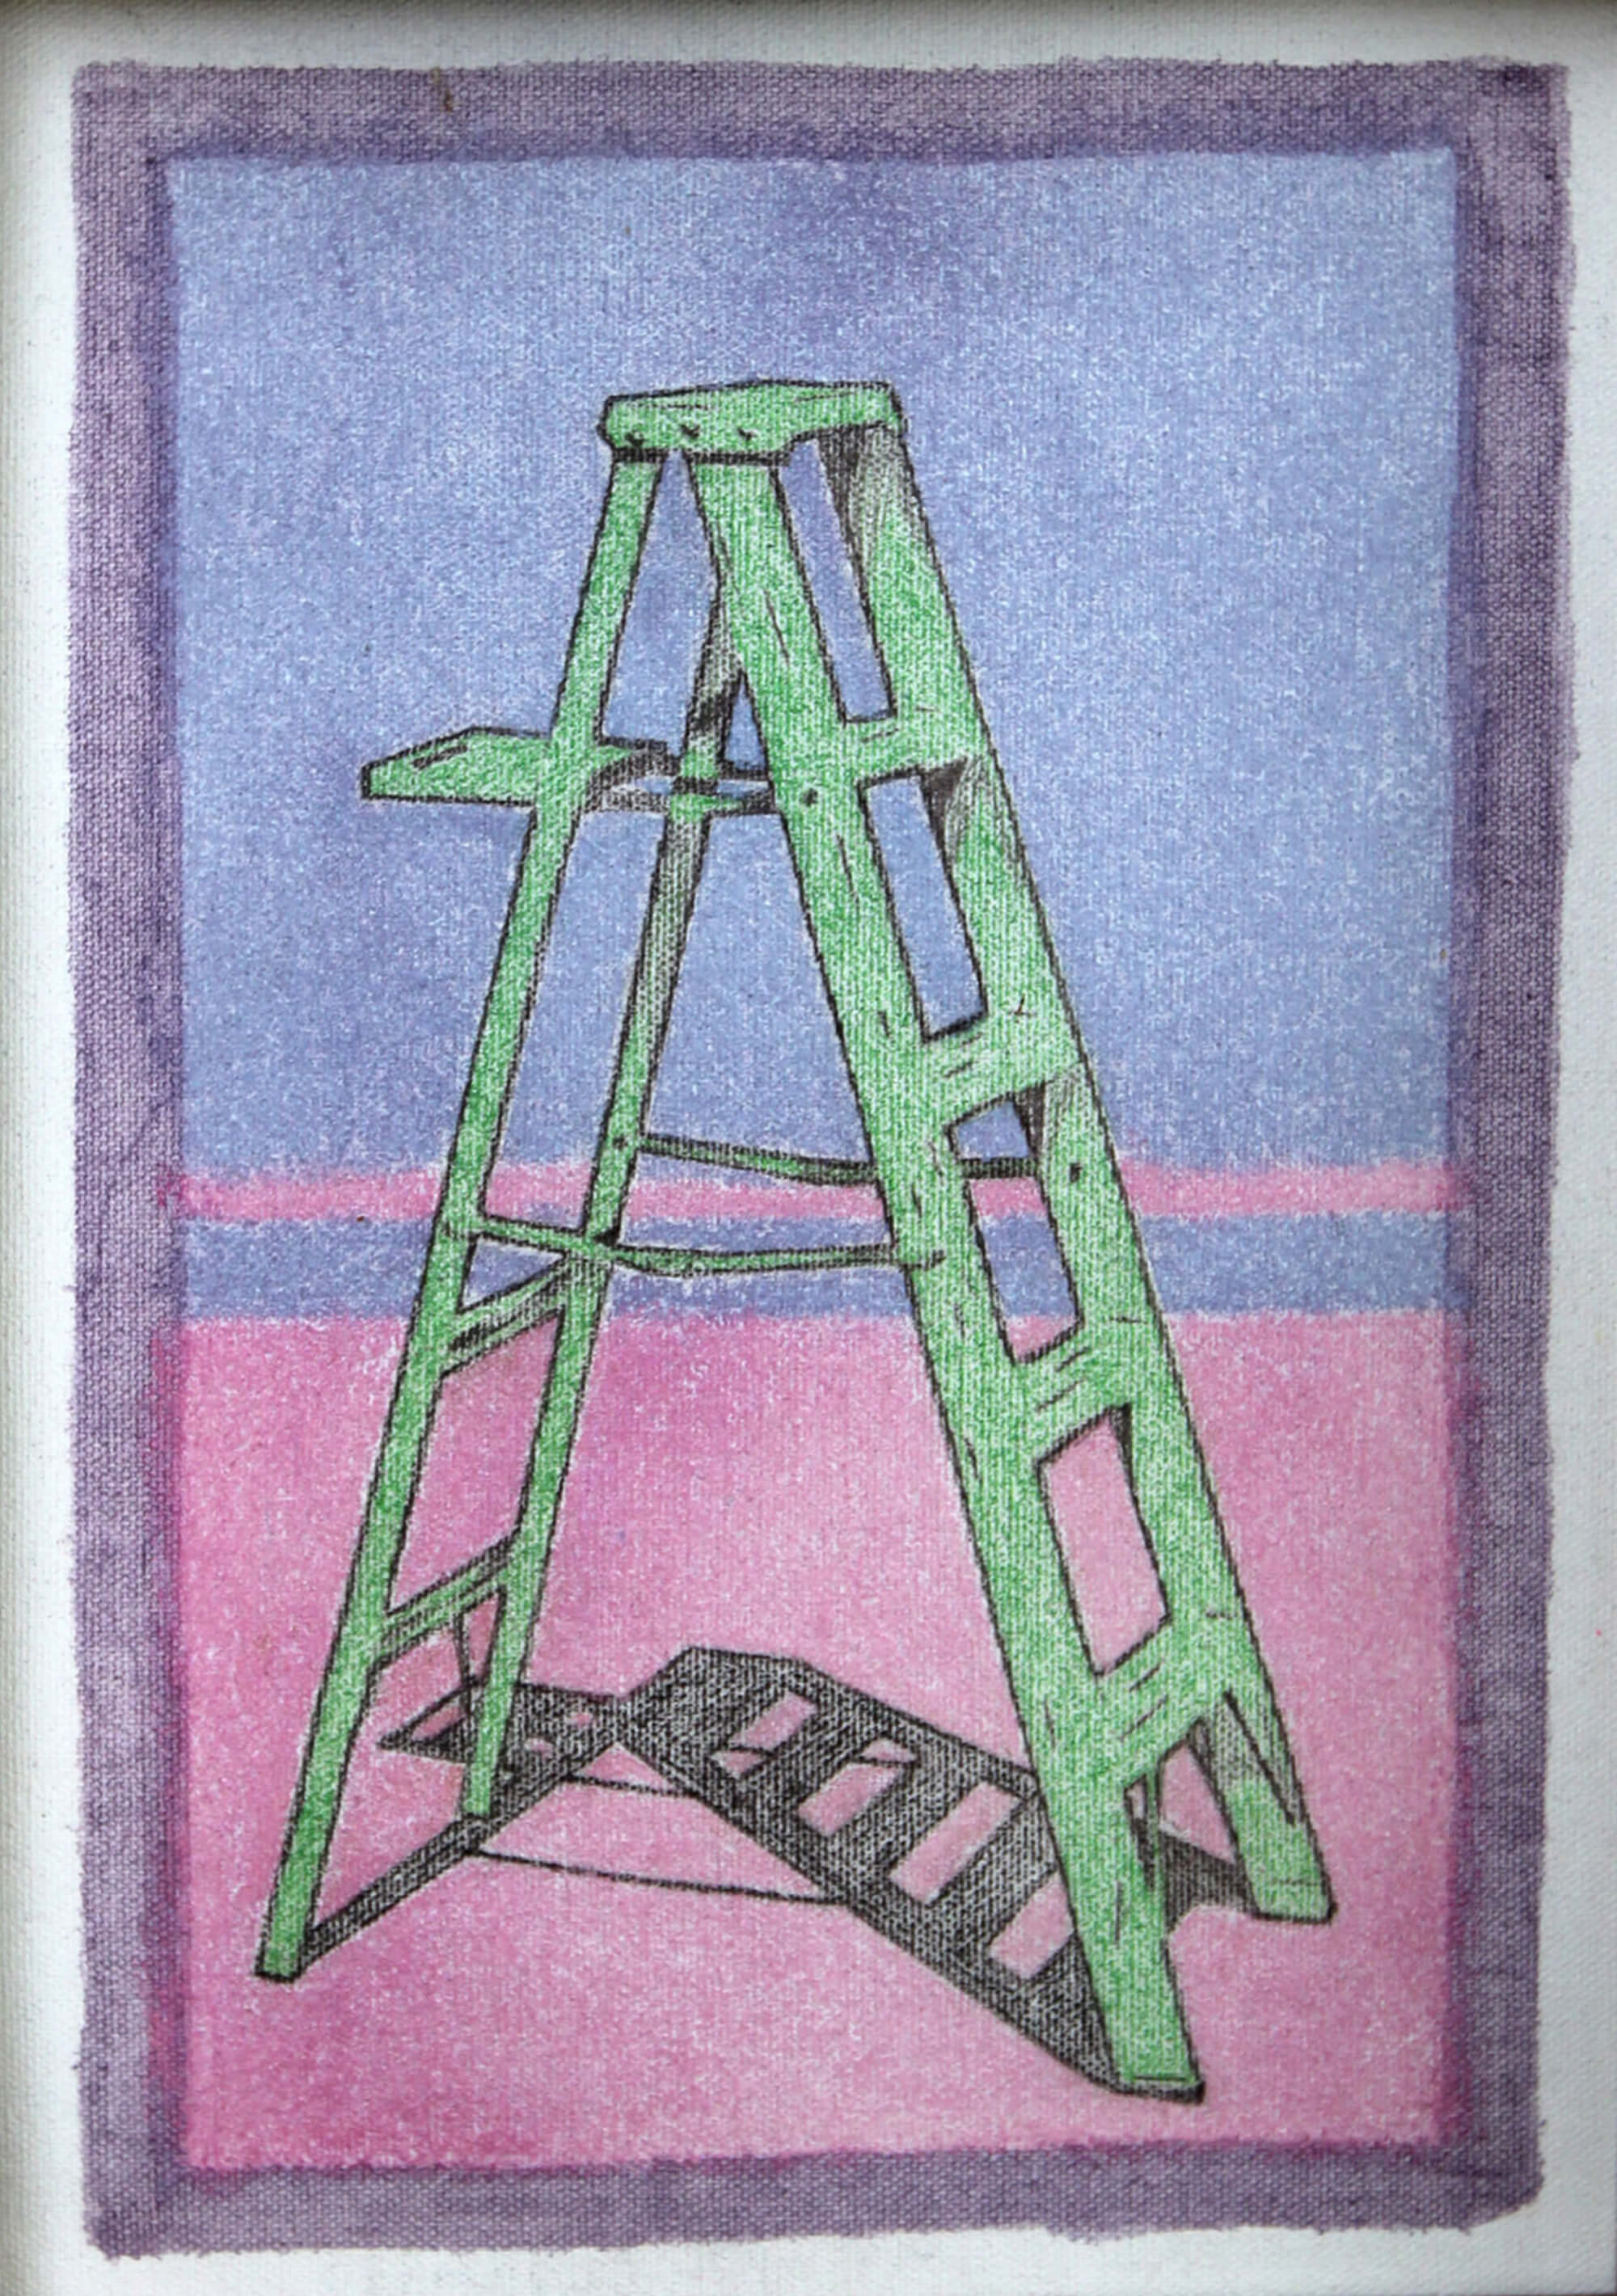 Chalk pastel and pencil painting of green stepladder with violet and purple background as metaphor of ascending by Ludwig Medina